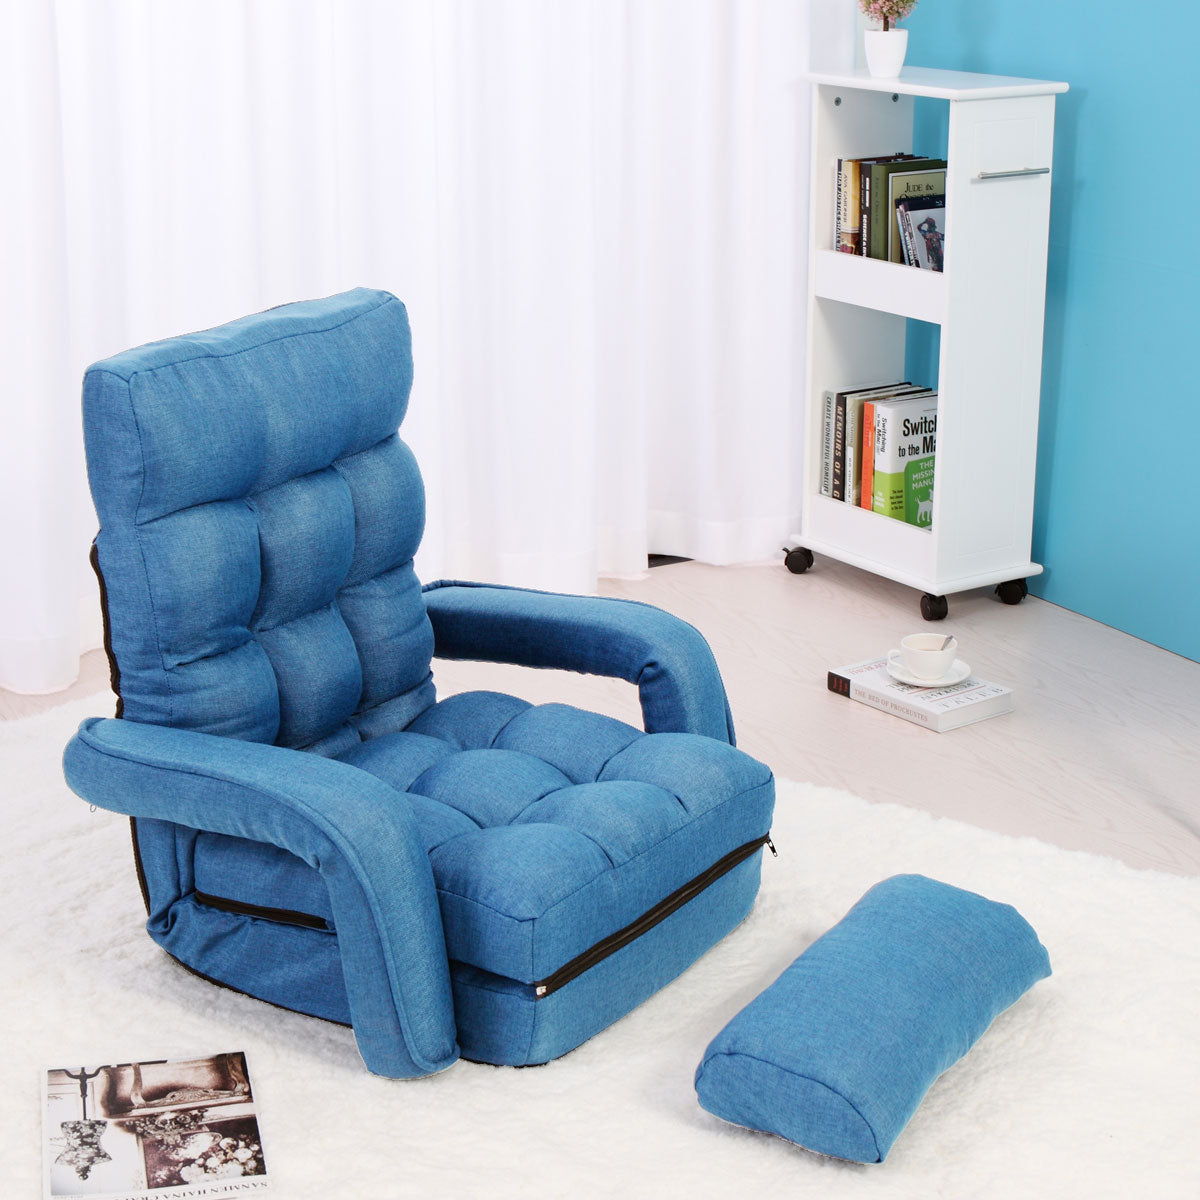 Adjustable 5 Position Folding Floor Chair Lazy Sofa Cushion Gaming Cha Sandinrayli